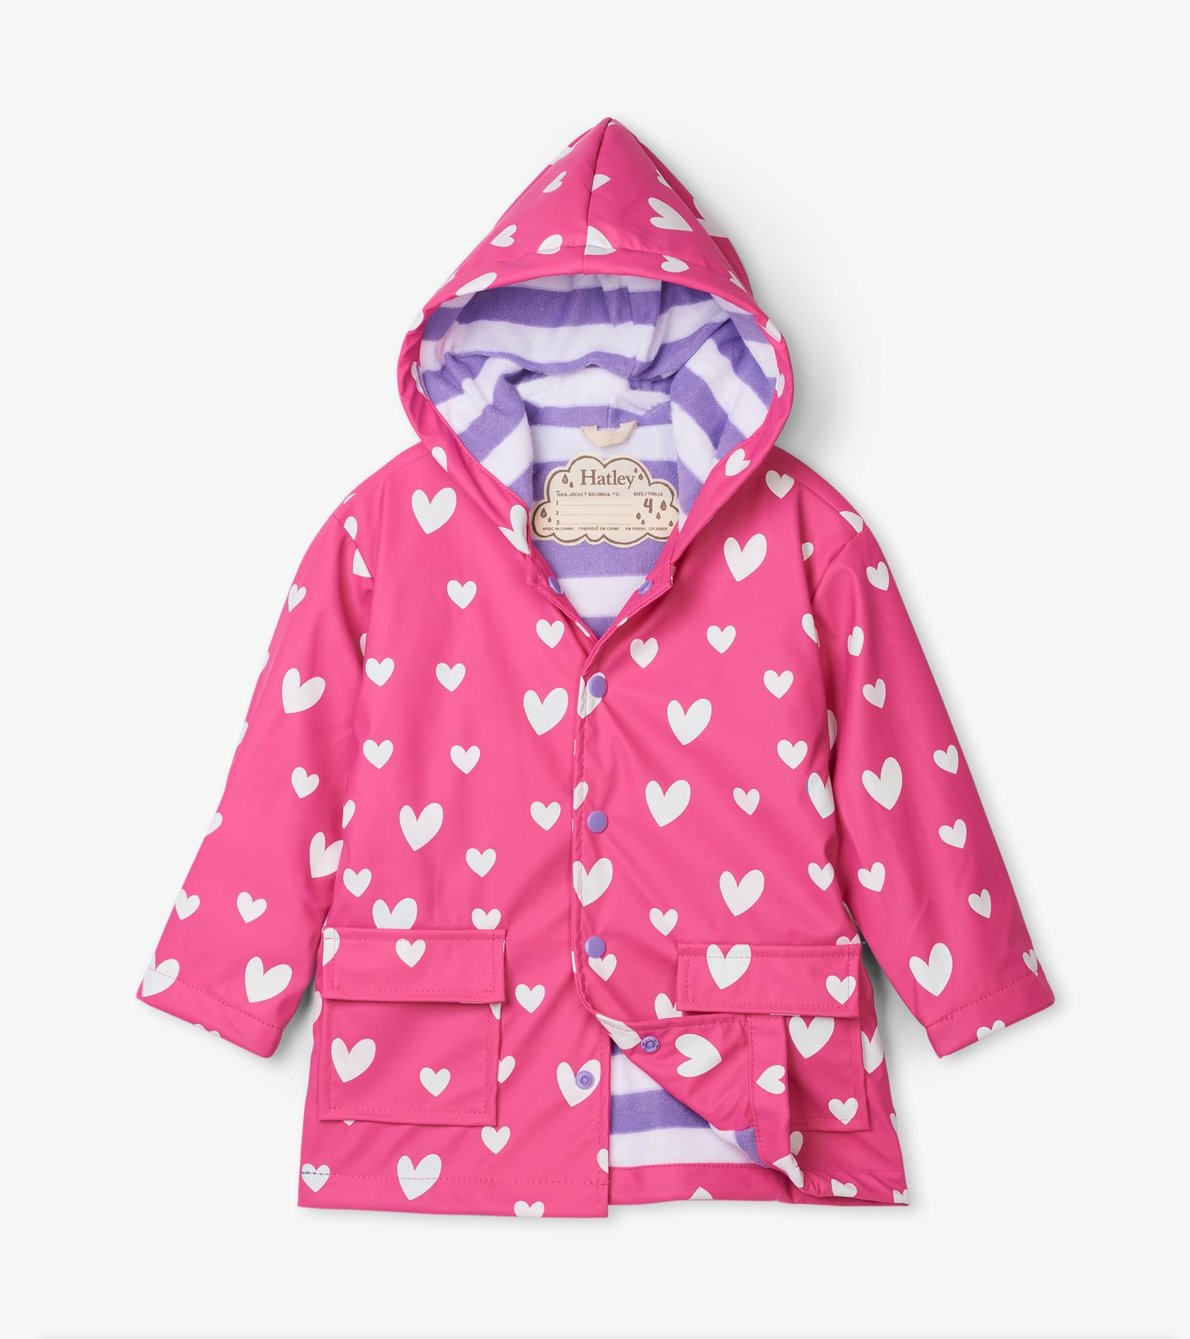 View larger image of Colour Changing Sweethearts Raincoat